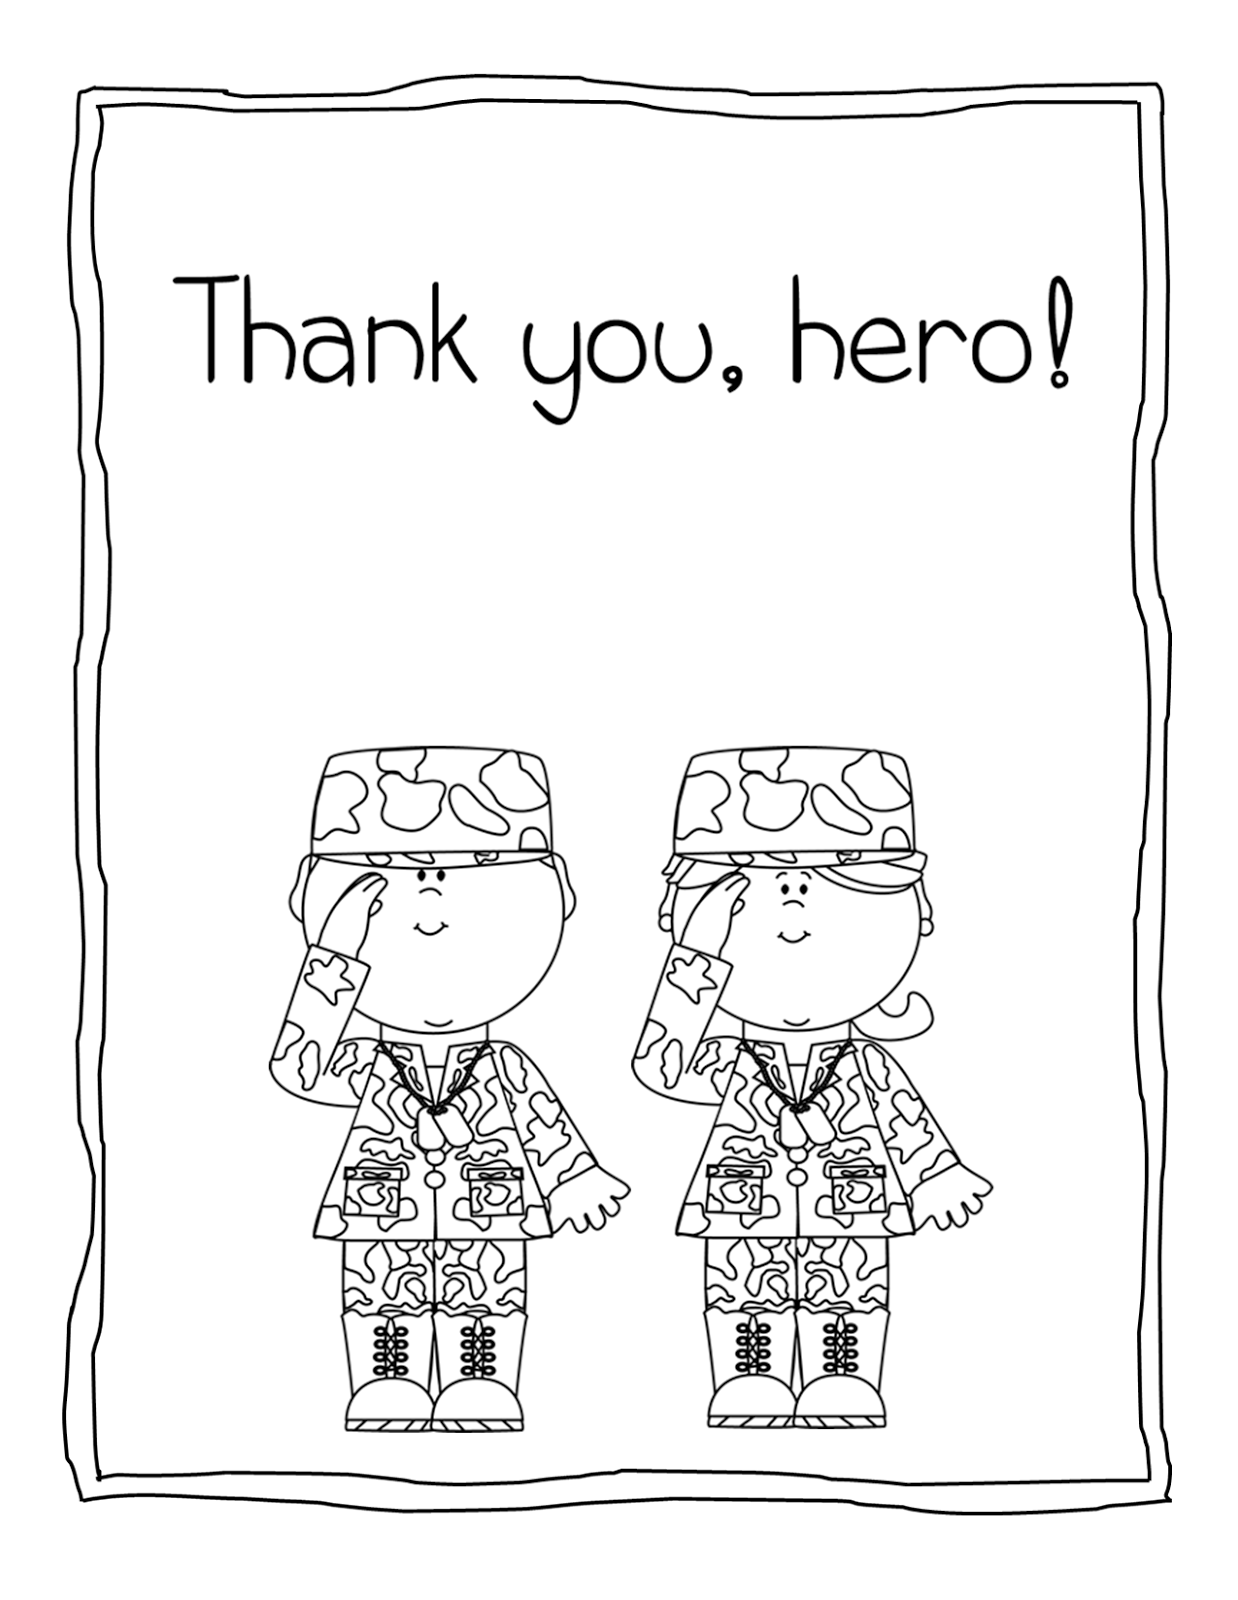 veterans day coloring page veterans day coloring pages free printable veterans day day coloring page veterans